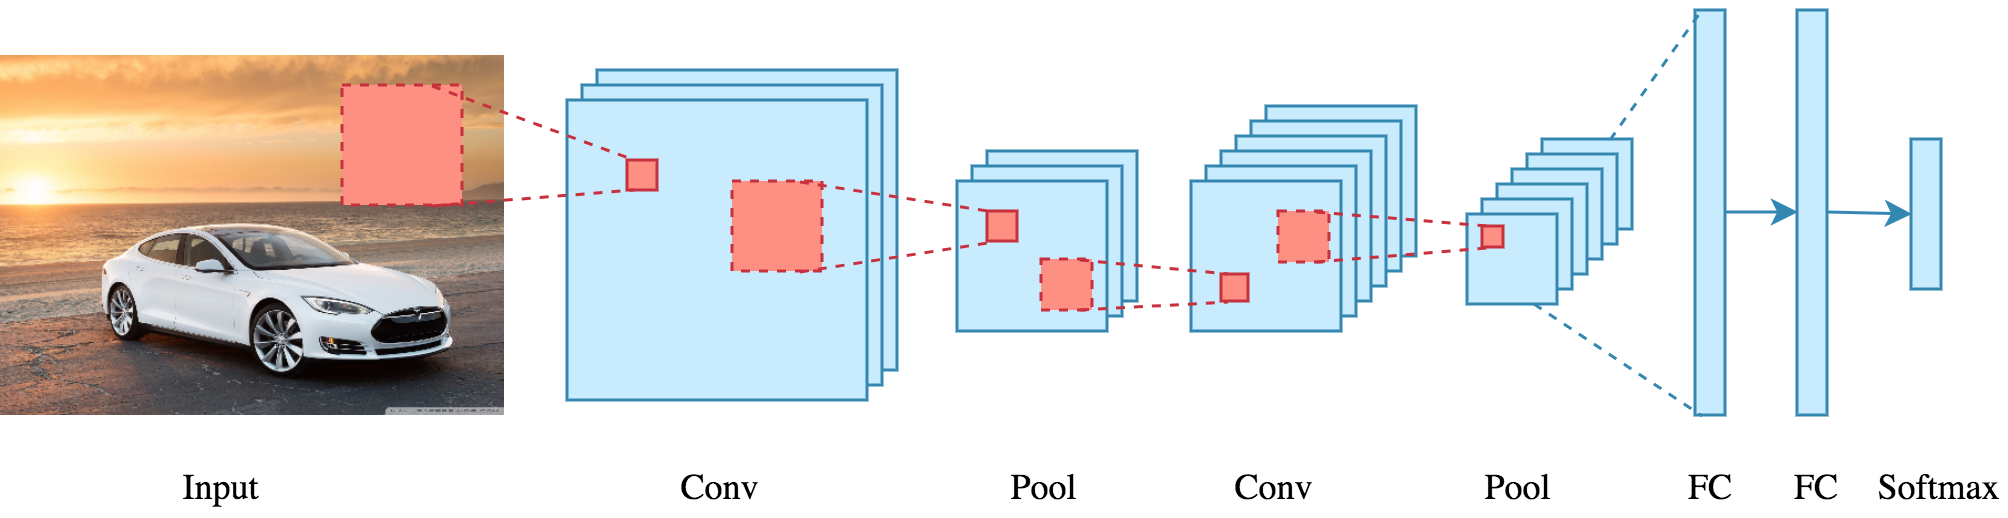 Applied Deep Learning - Part 4: Convolutional Neural Networks